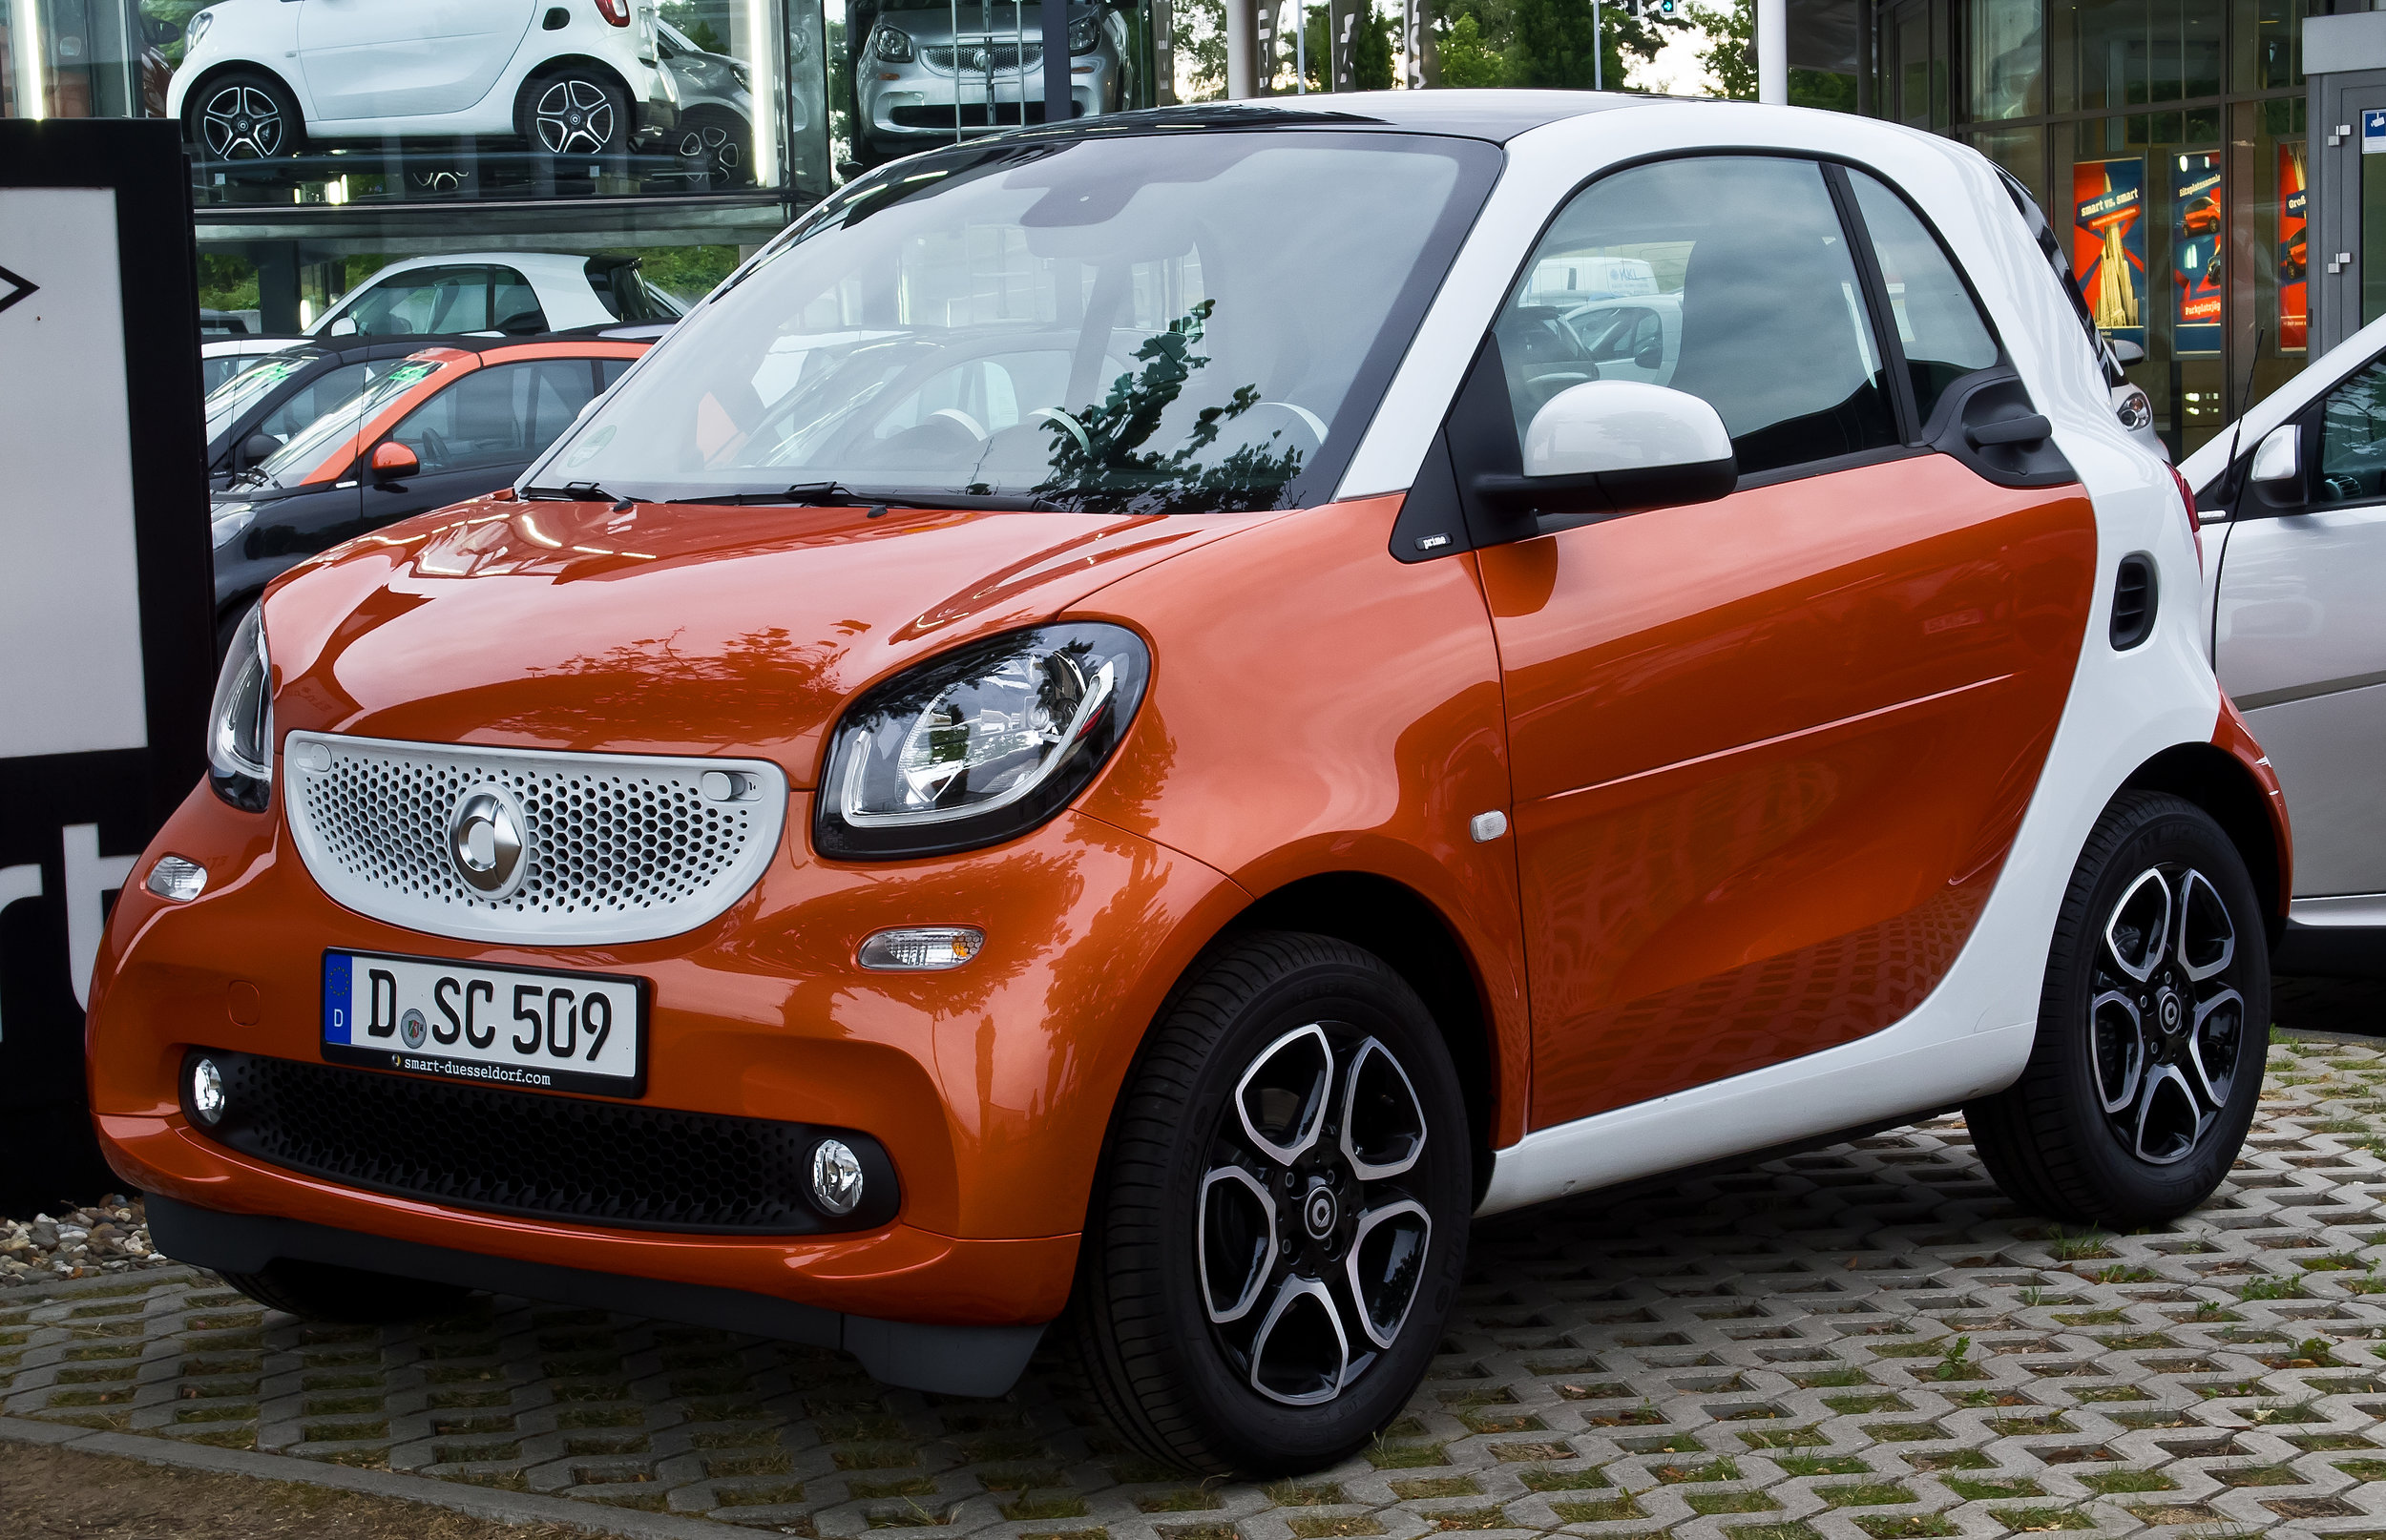 453 FORTWO, FORFOUR, AND CABRIO   New Generation Smart Vehicles 2014–present